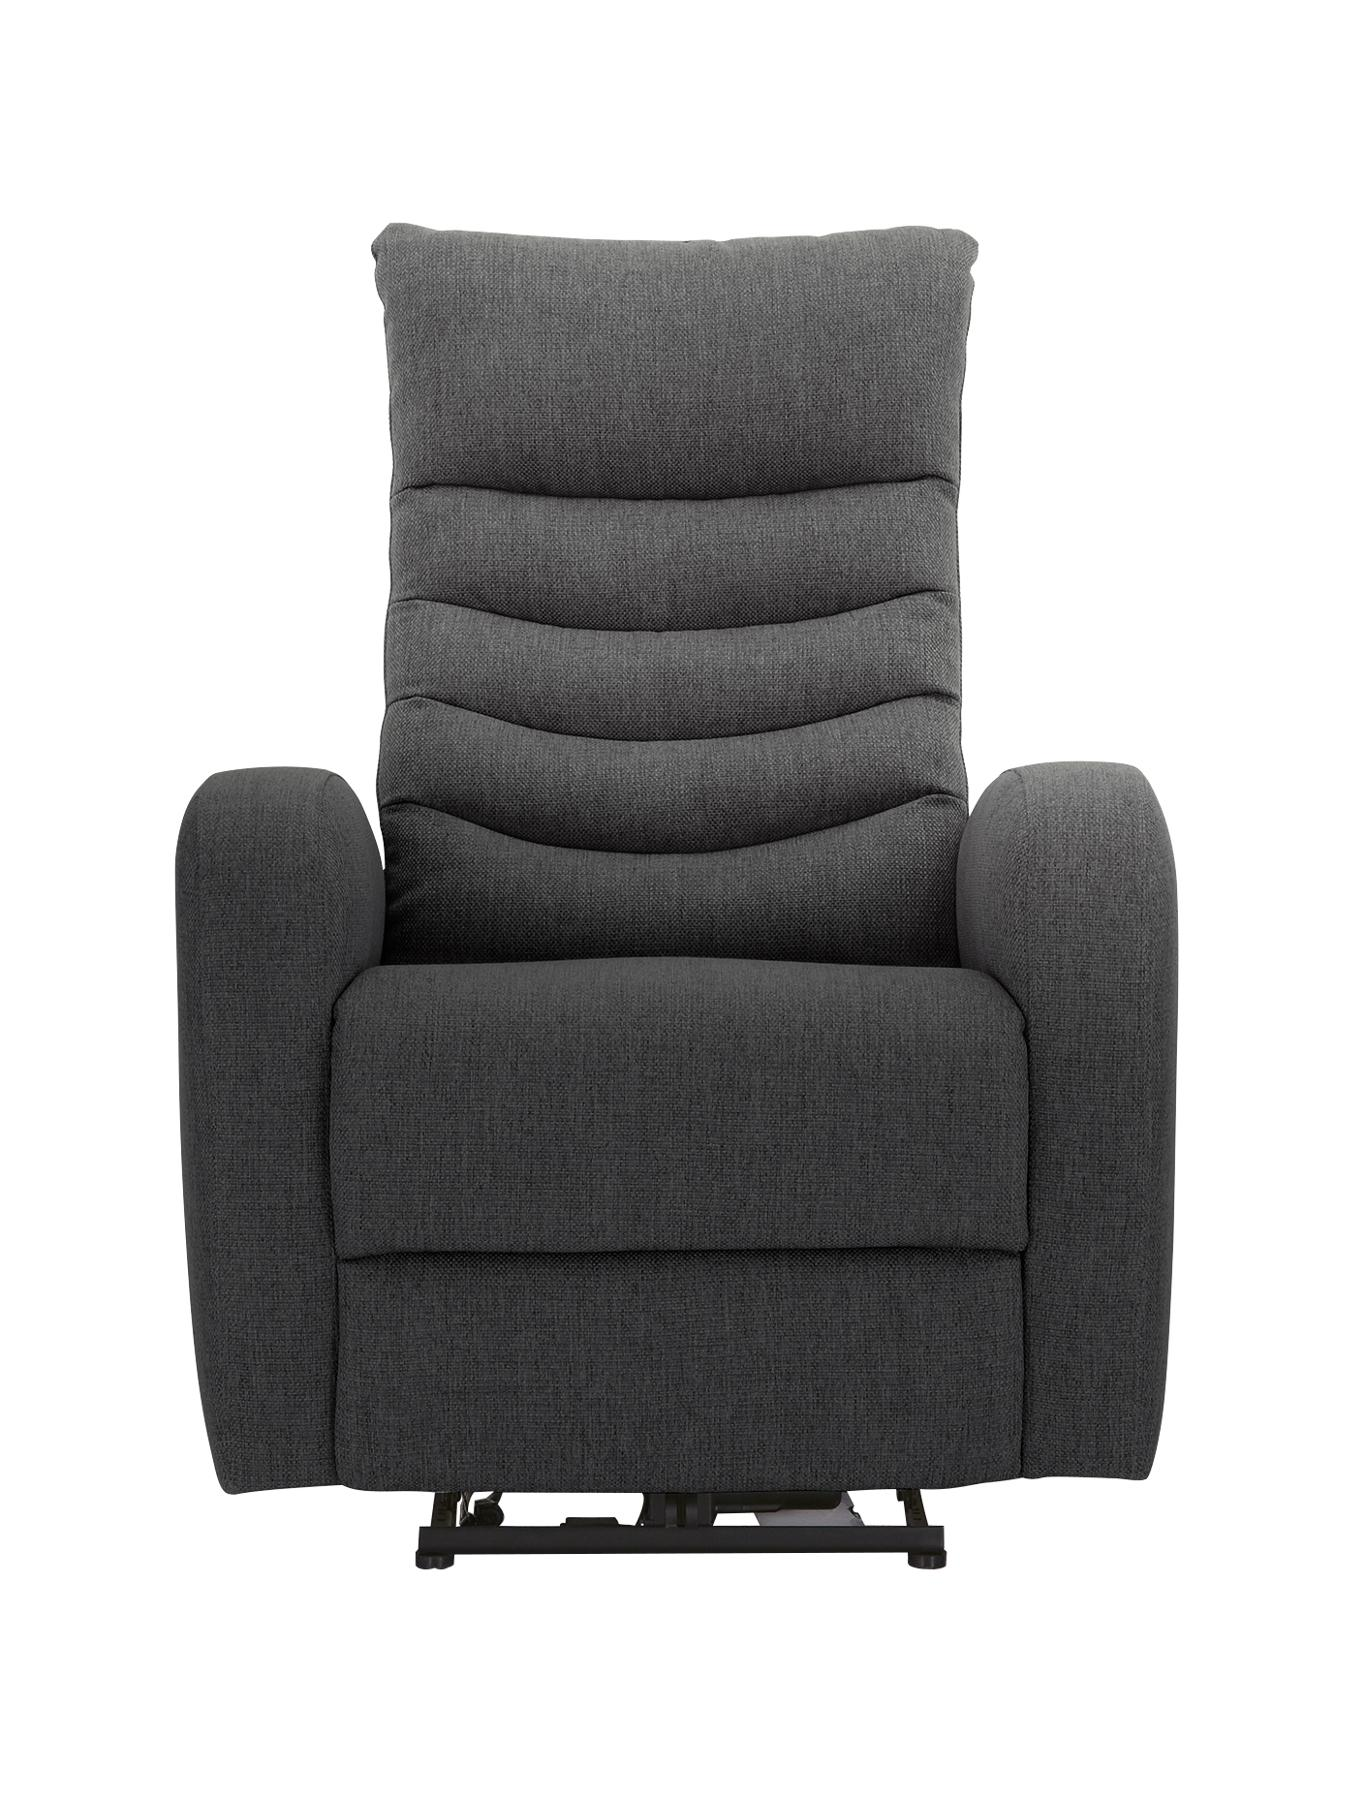 swivel chair littlewoods heating pad best recliner prices in living room online